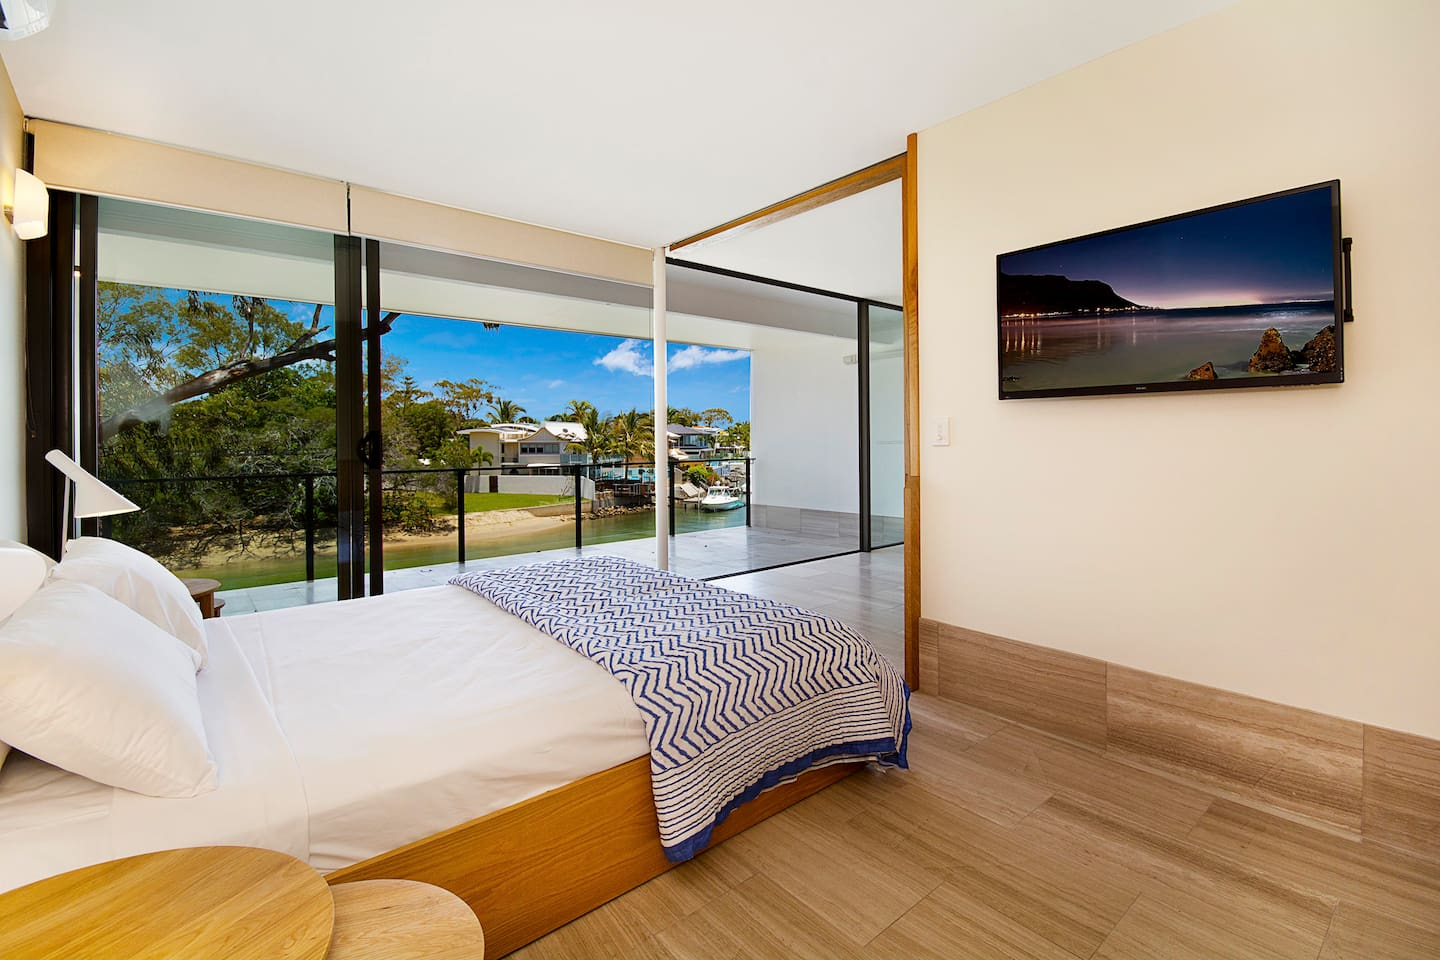 Master bedroom with sliding cavity door revealing Noosa River with sunset views